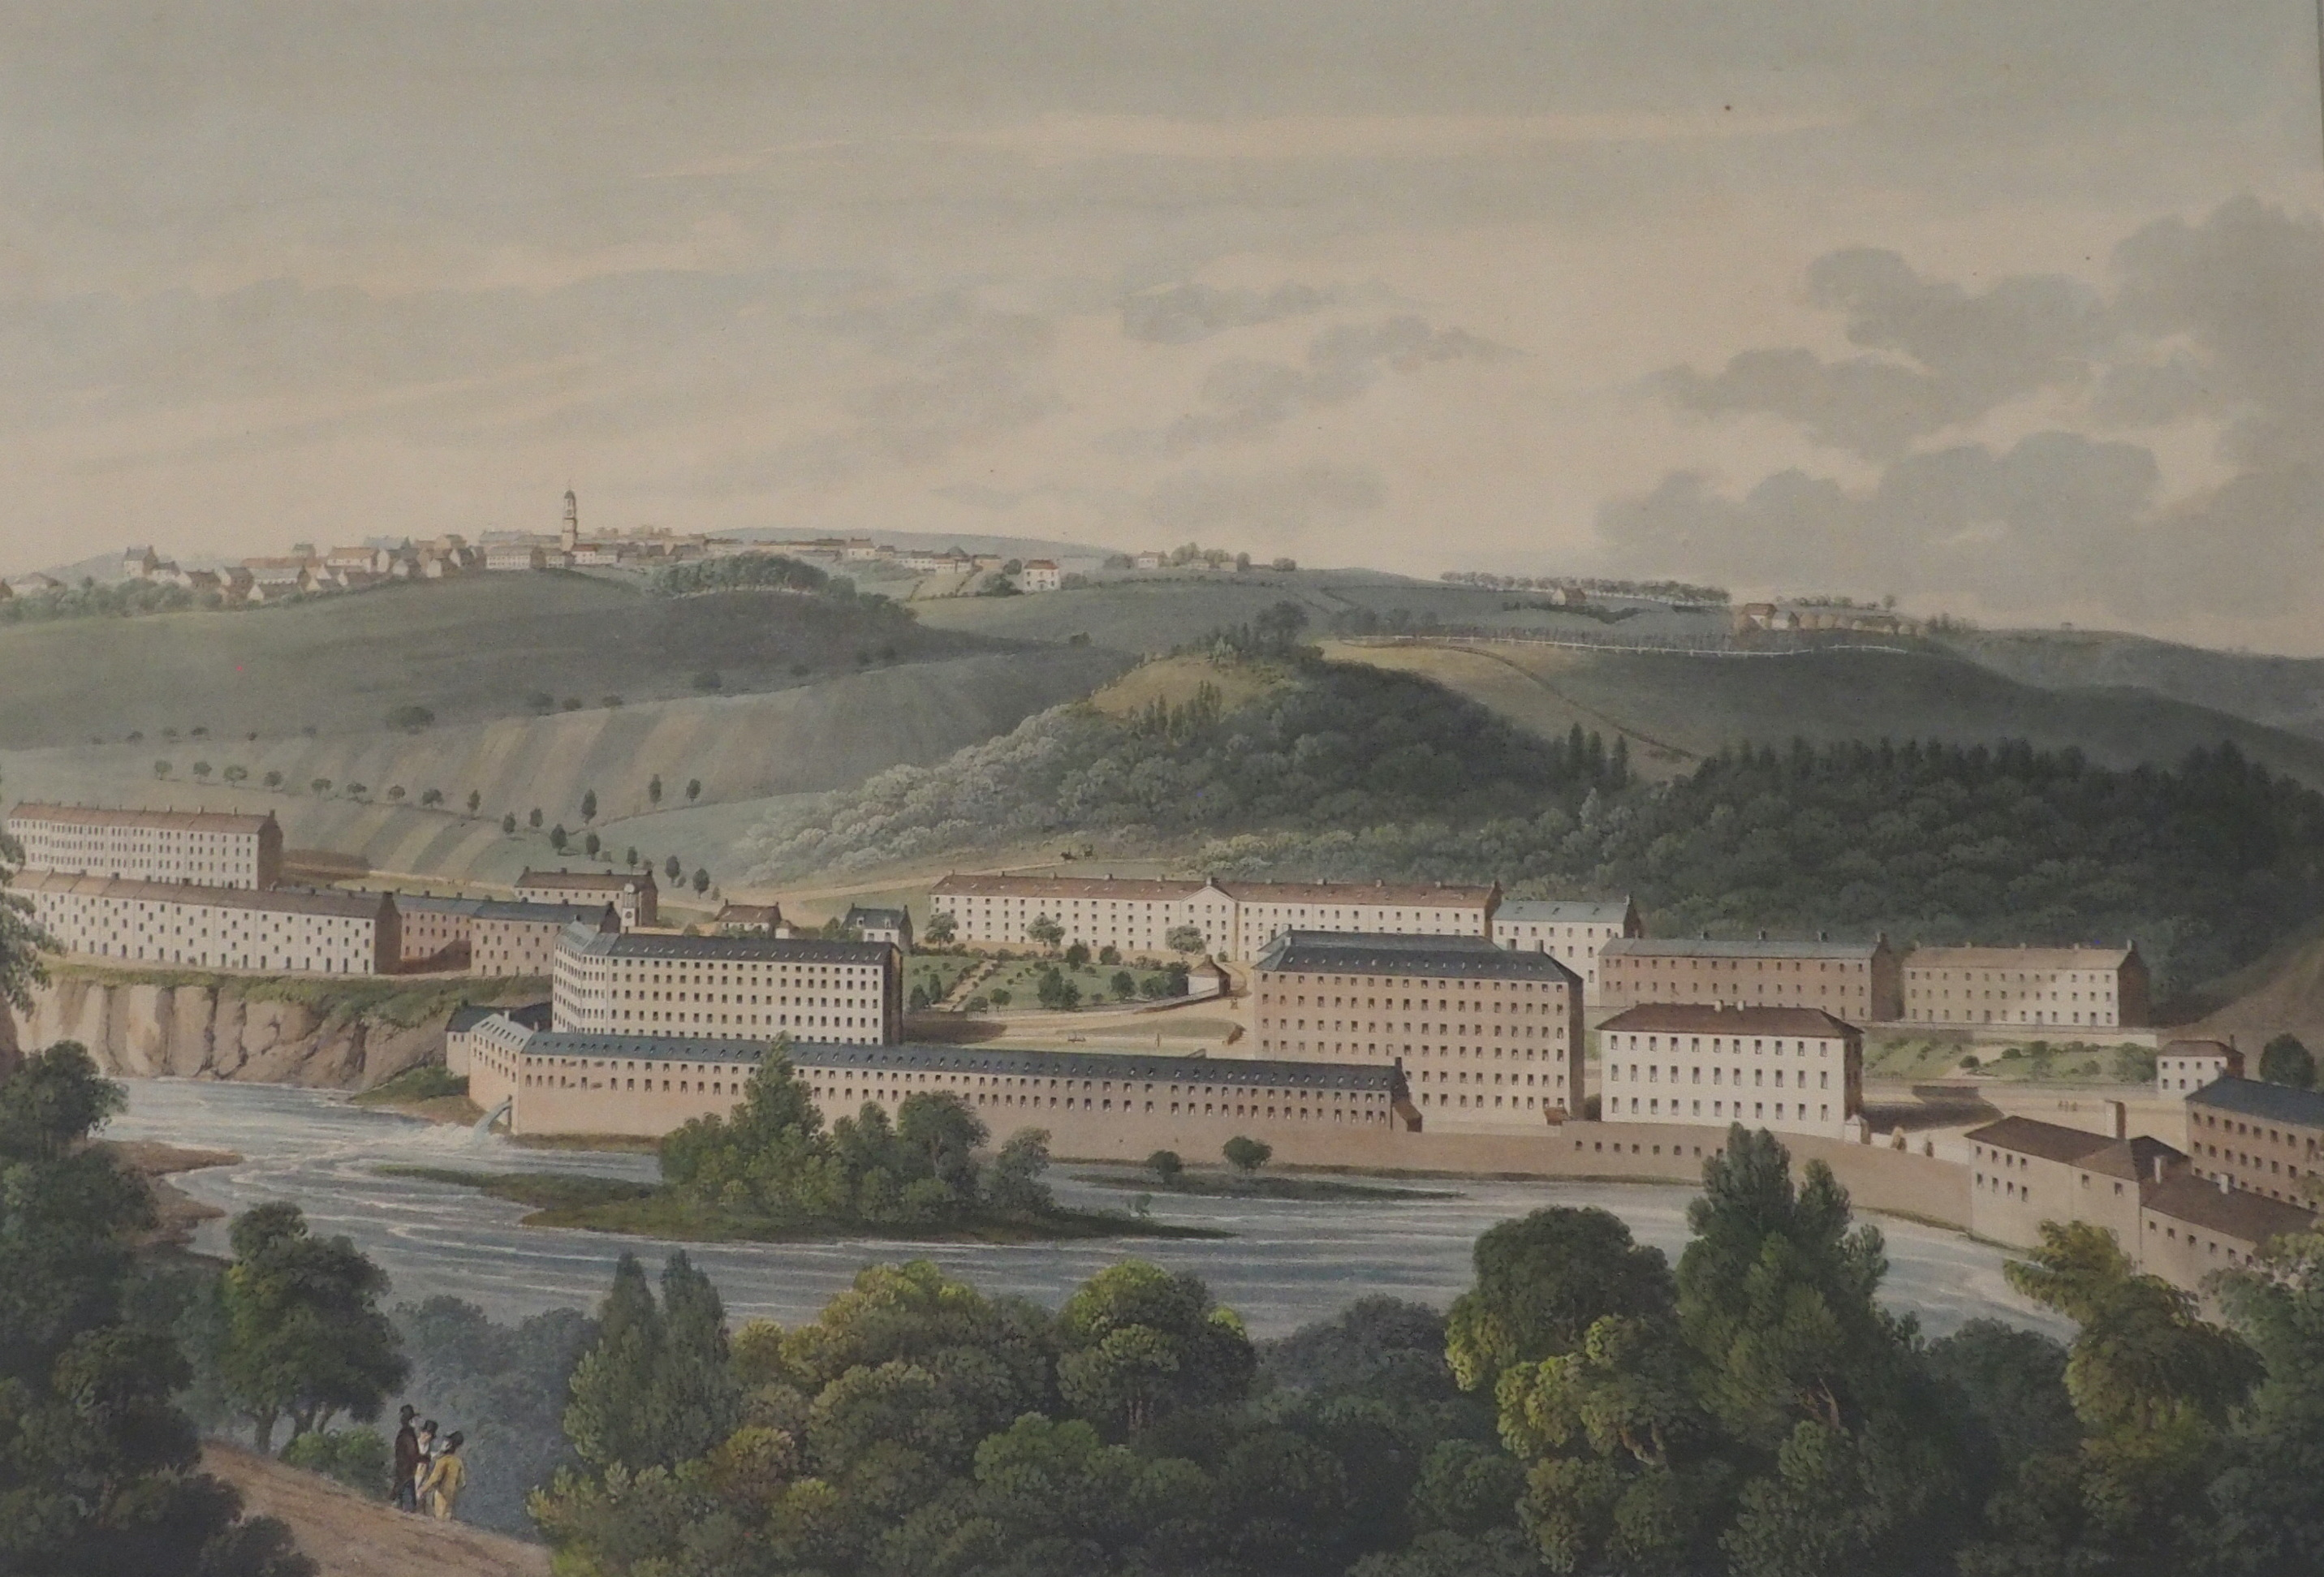 AFTER CLARK THE TOWN OF LANARK aquatint, 46 x 59cm, A View of New Lanark from the South, 14 x